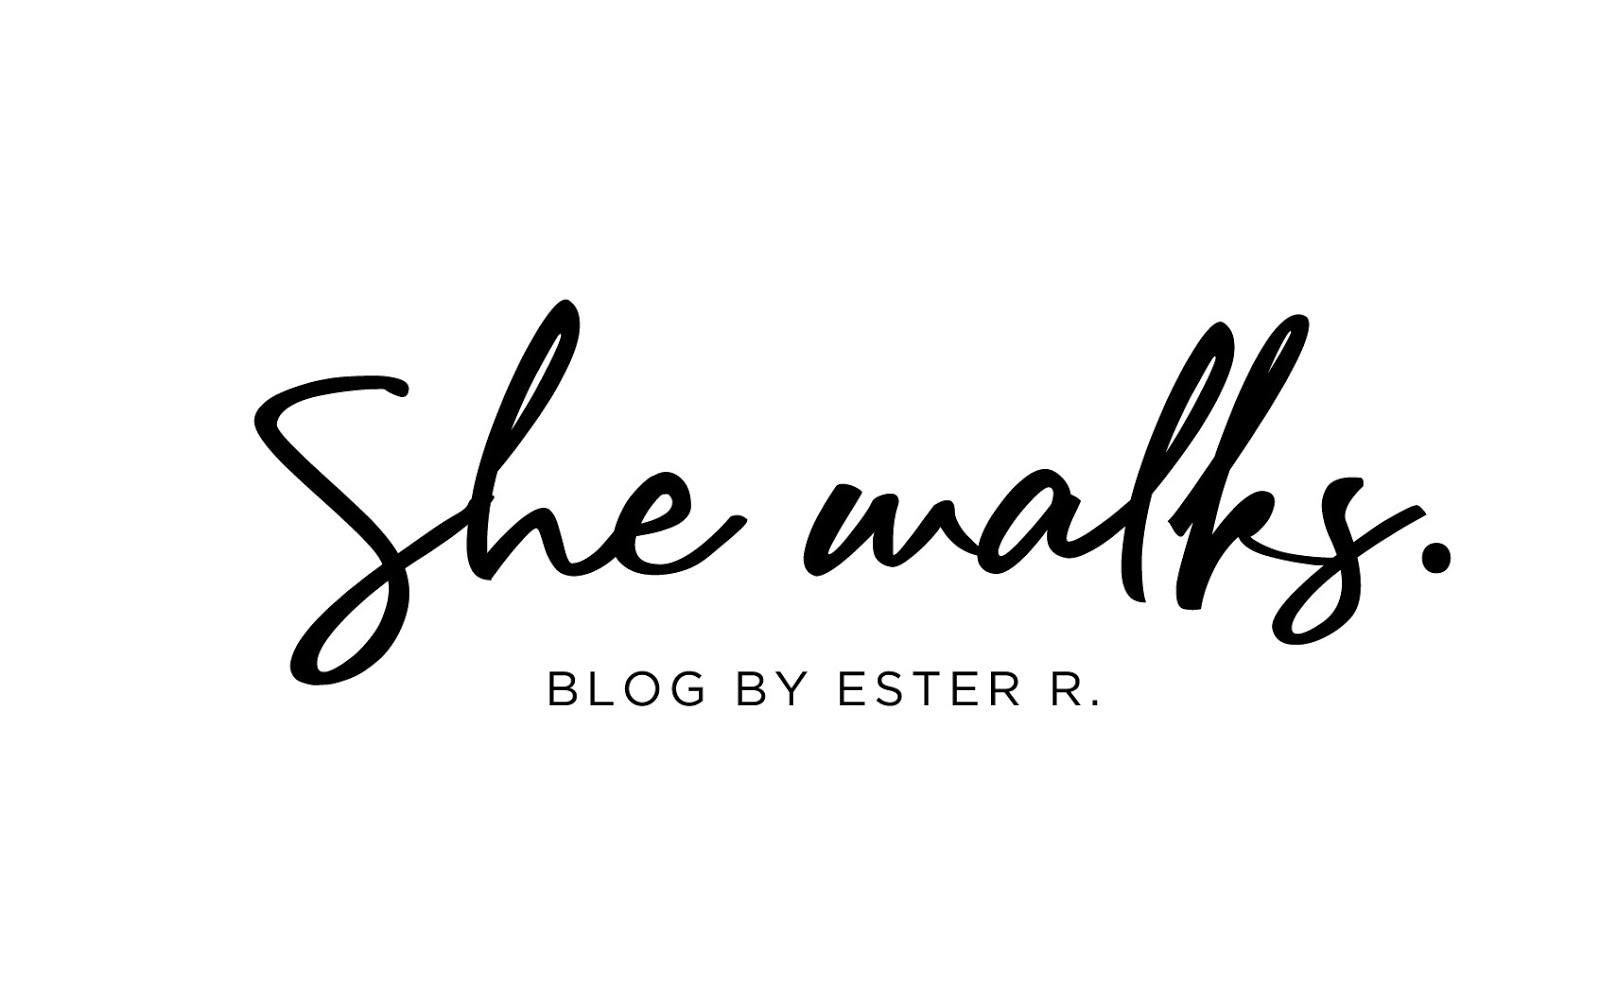 SHE WALKS